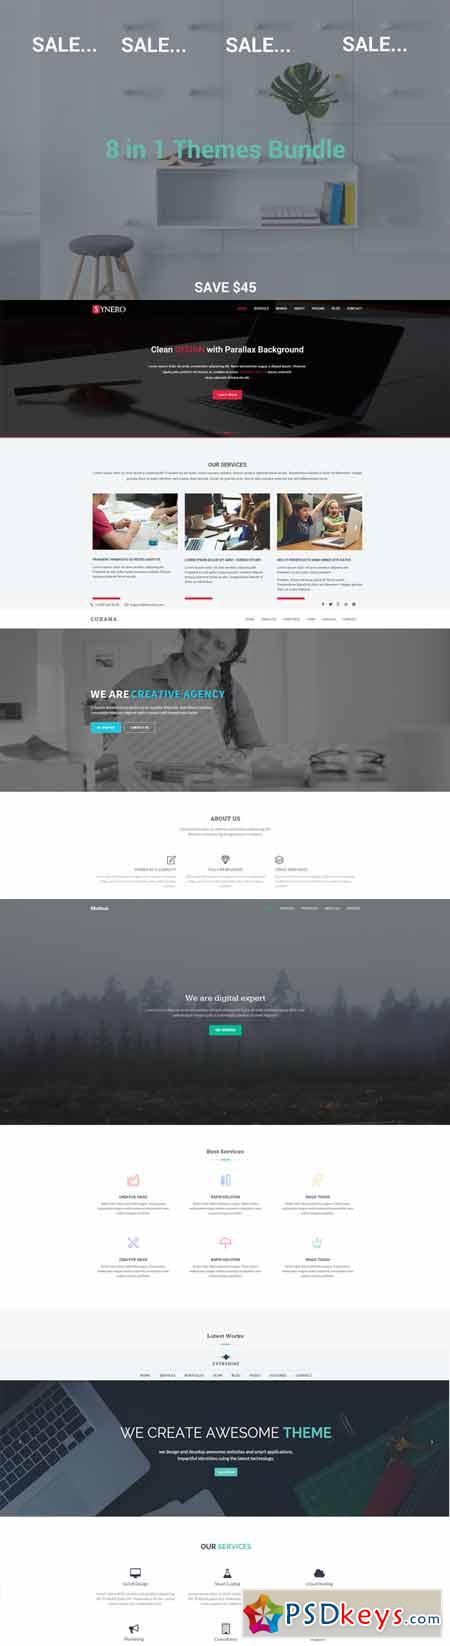 8 in 1 Theme 380380